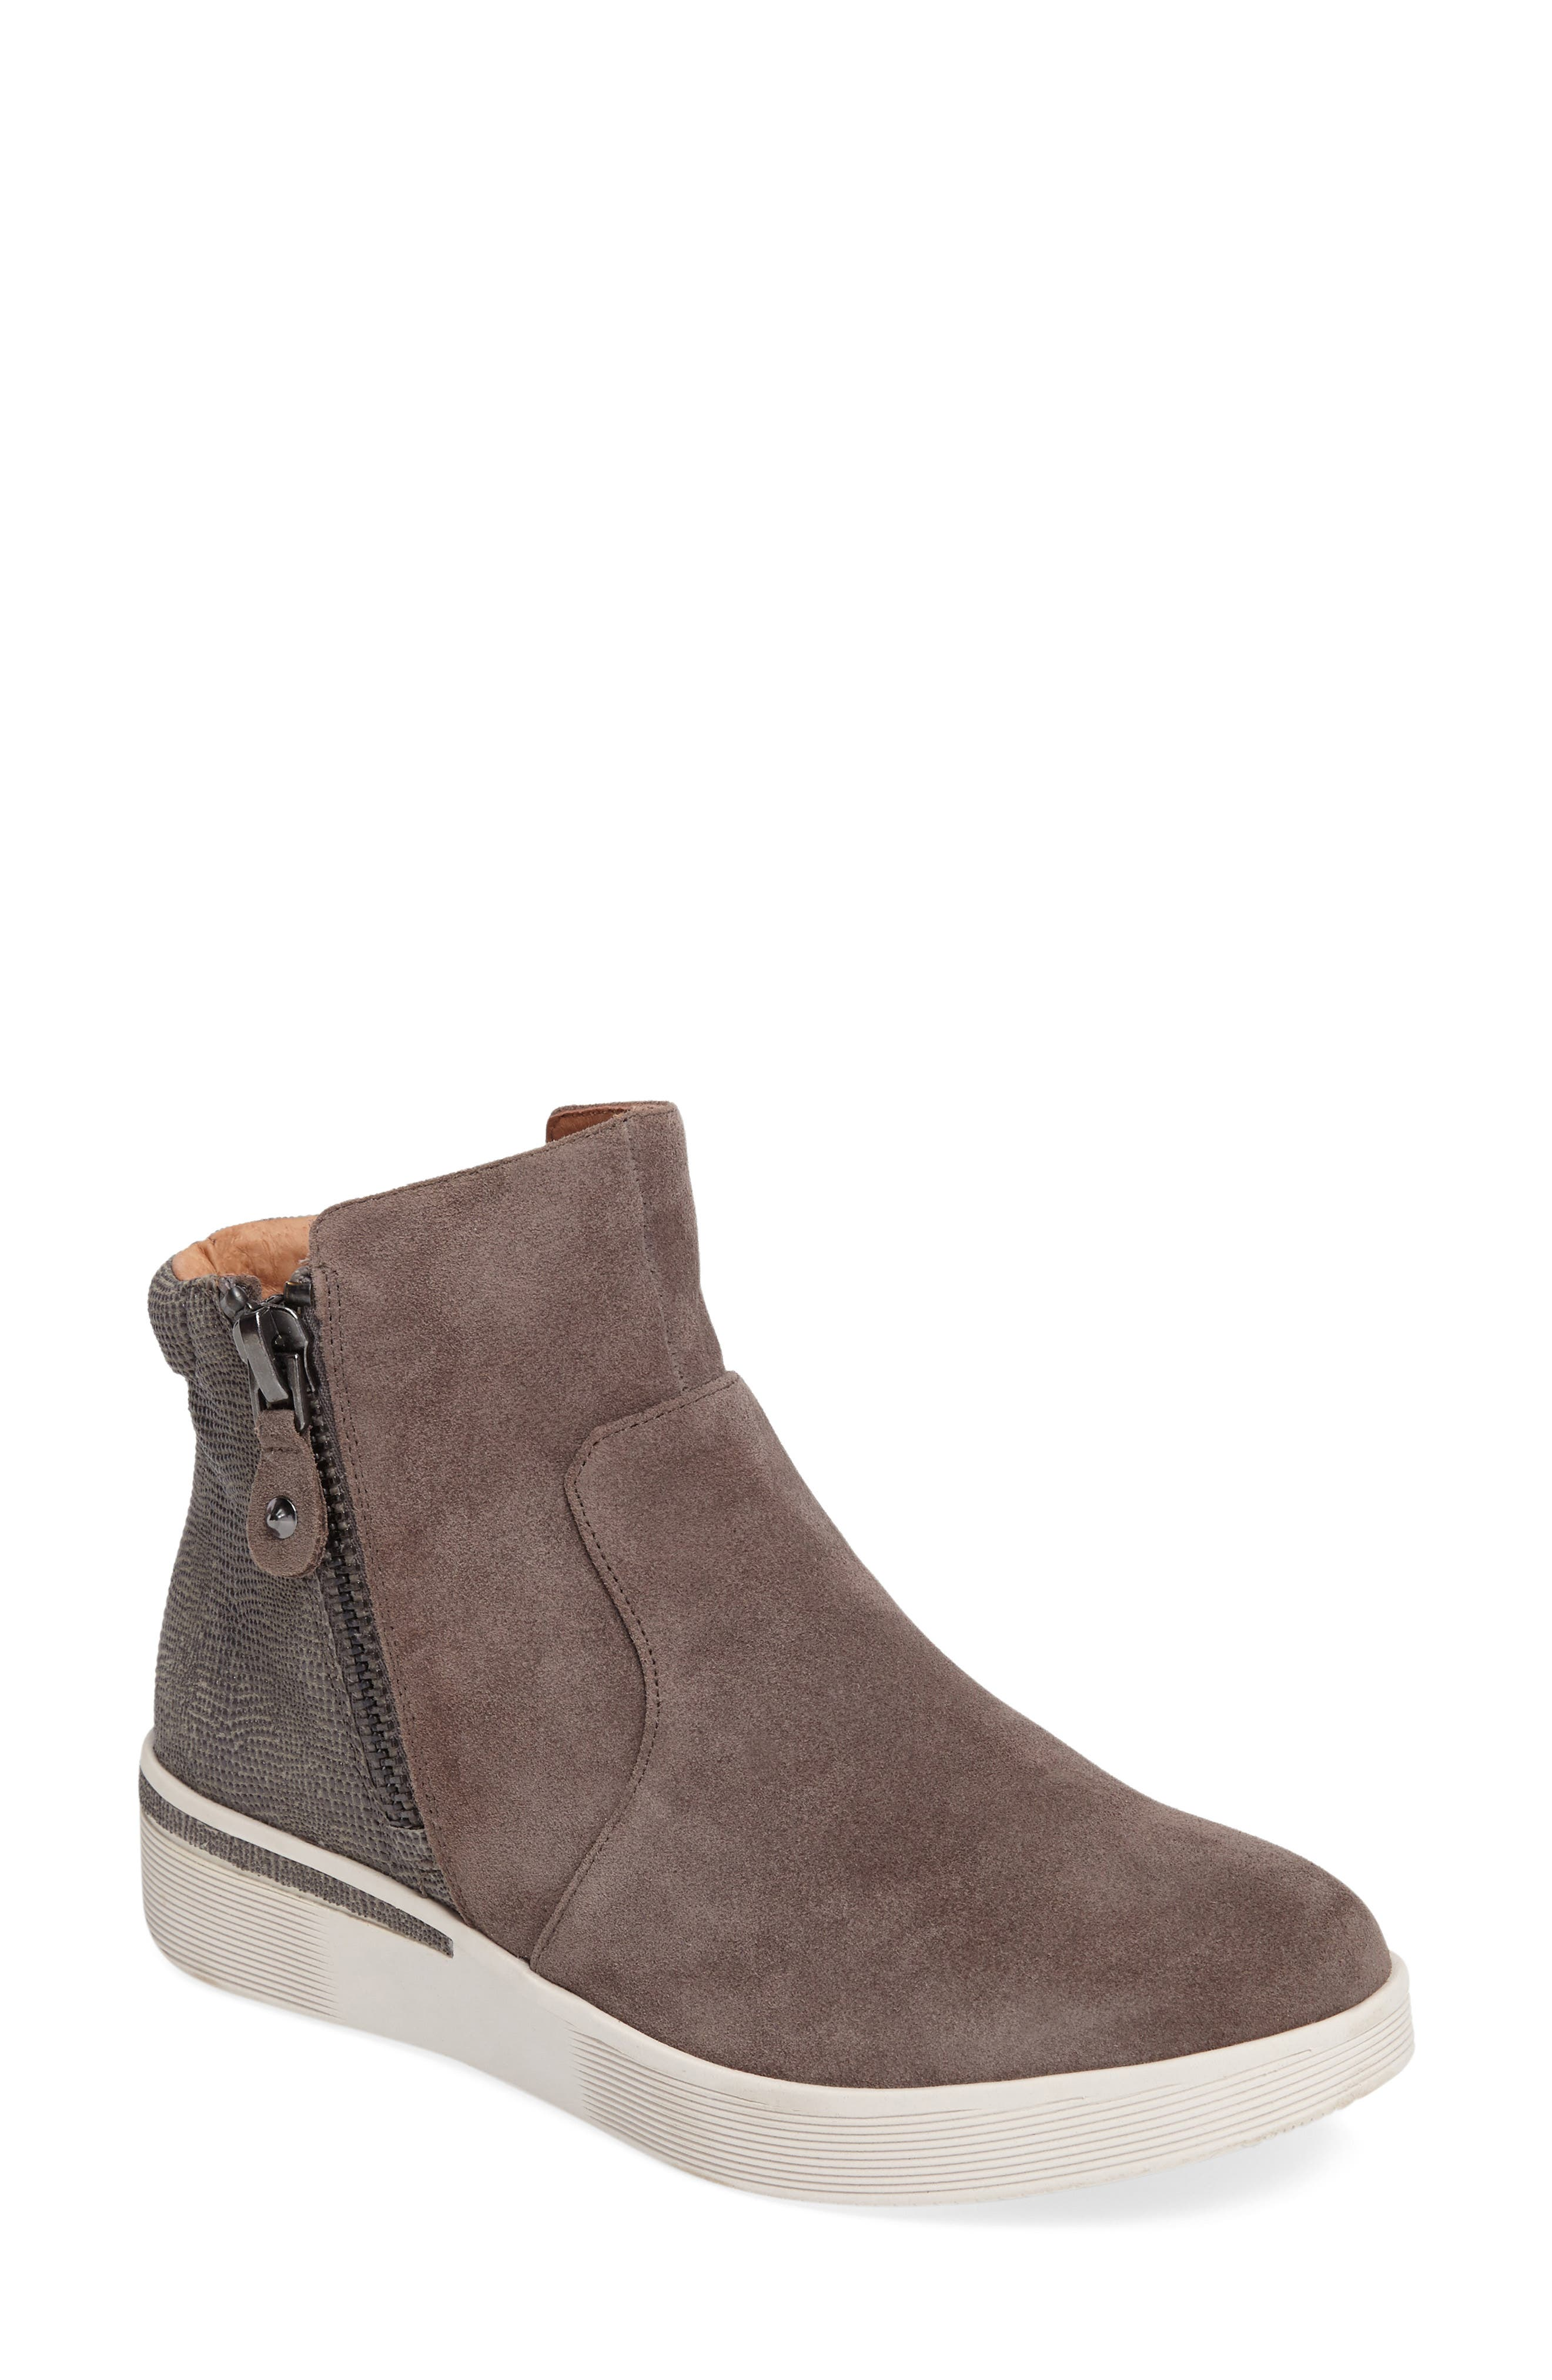 GENTLE SOULS BY KENNETH COLE, 'Harper' Sneaker Bootie, Main thumbnail 1, color, GREY LEATHER